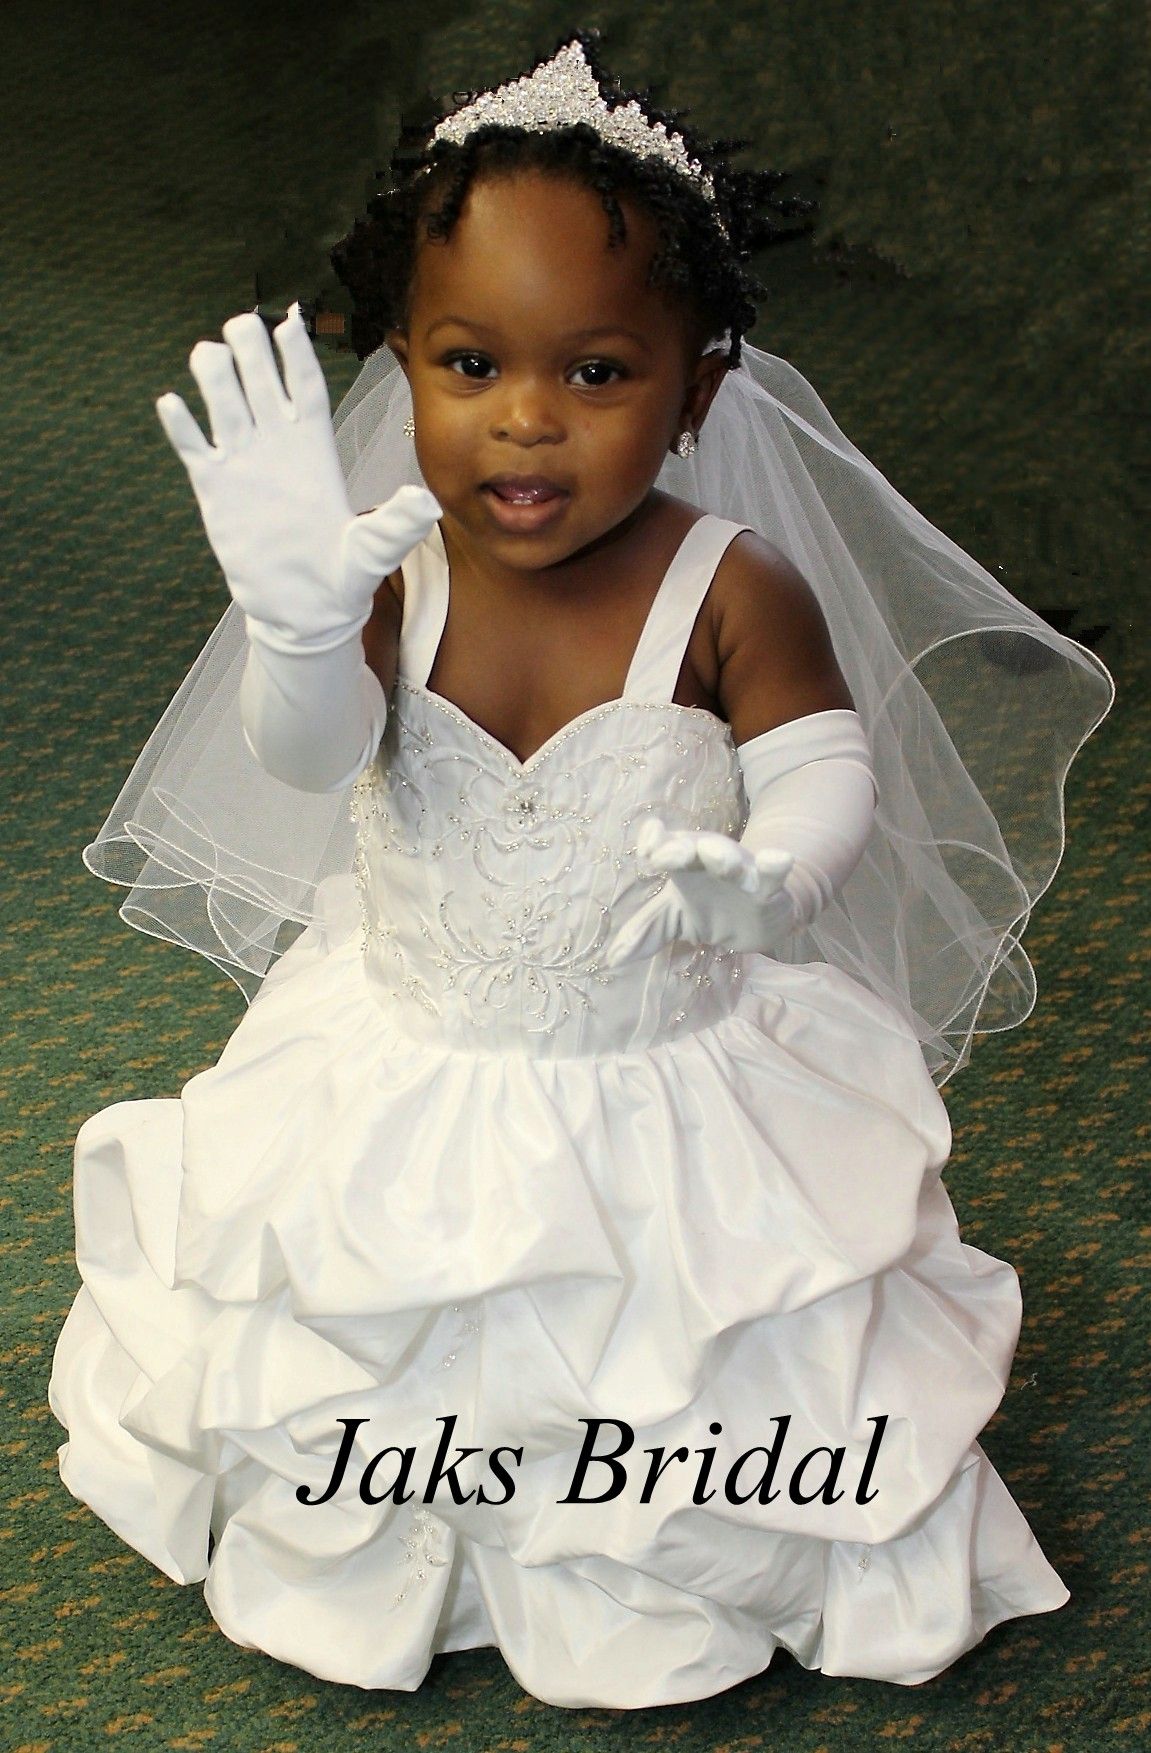 miniature bride dresses 9 baby dresses for wedding miniature baby wedding gown